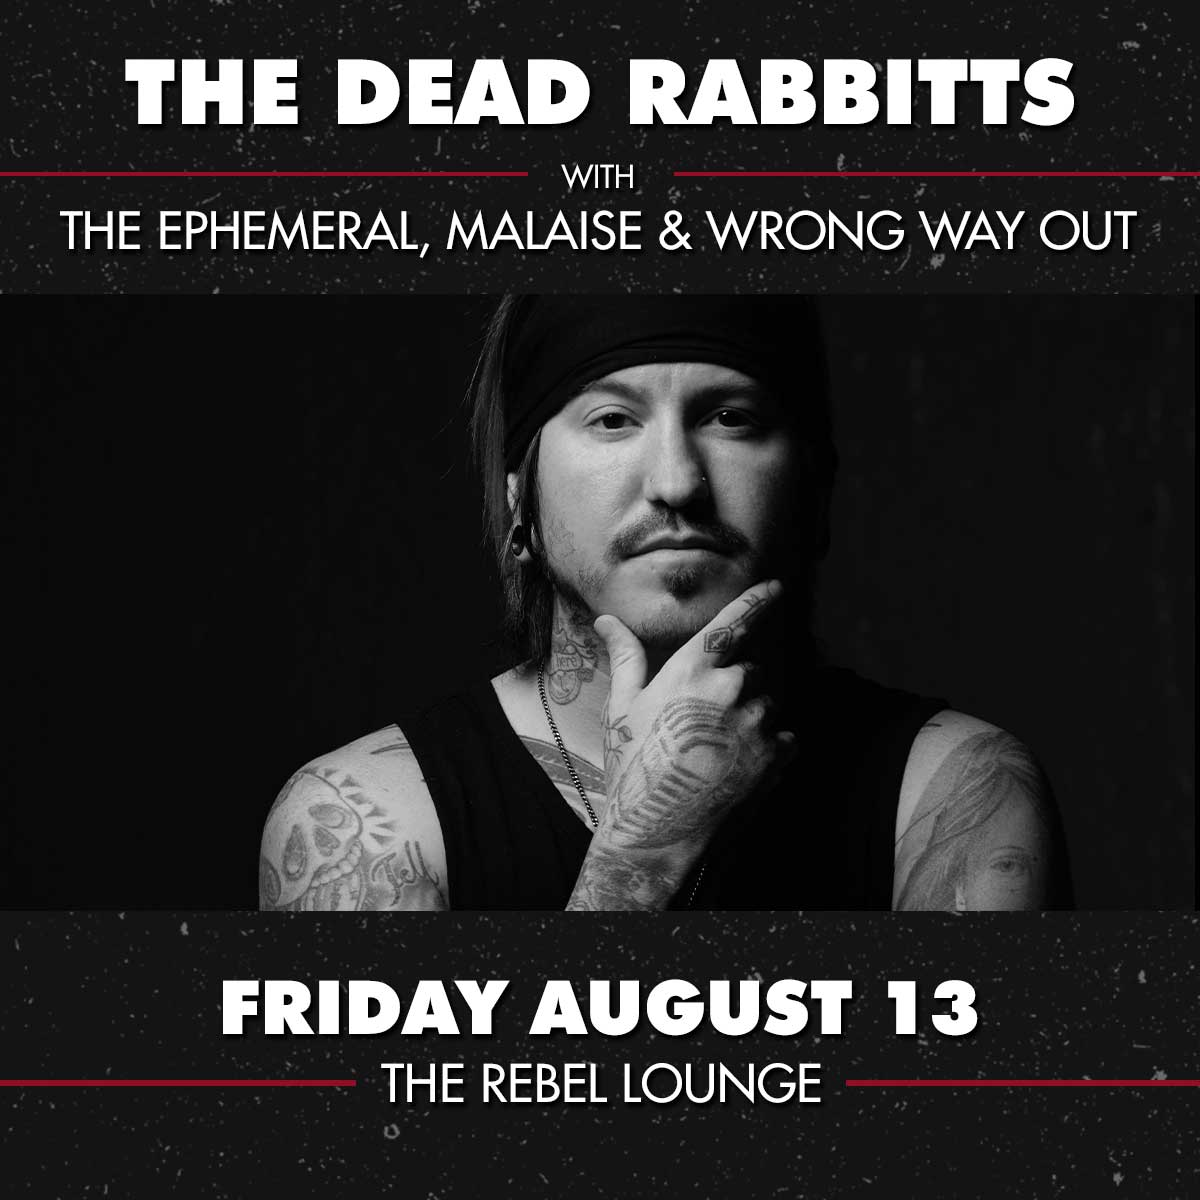 THE DEAD RABBITTS: